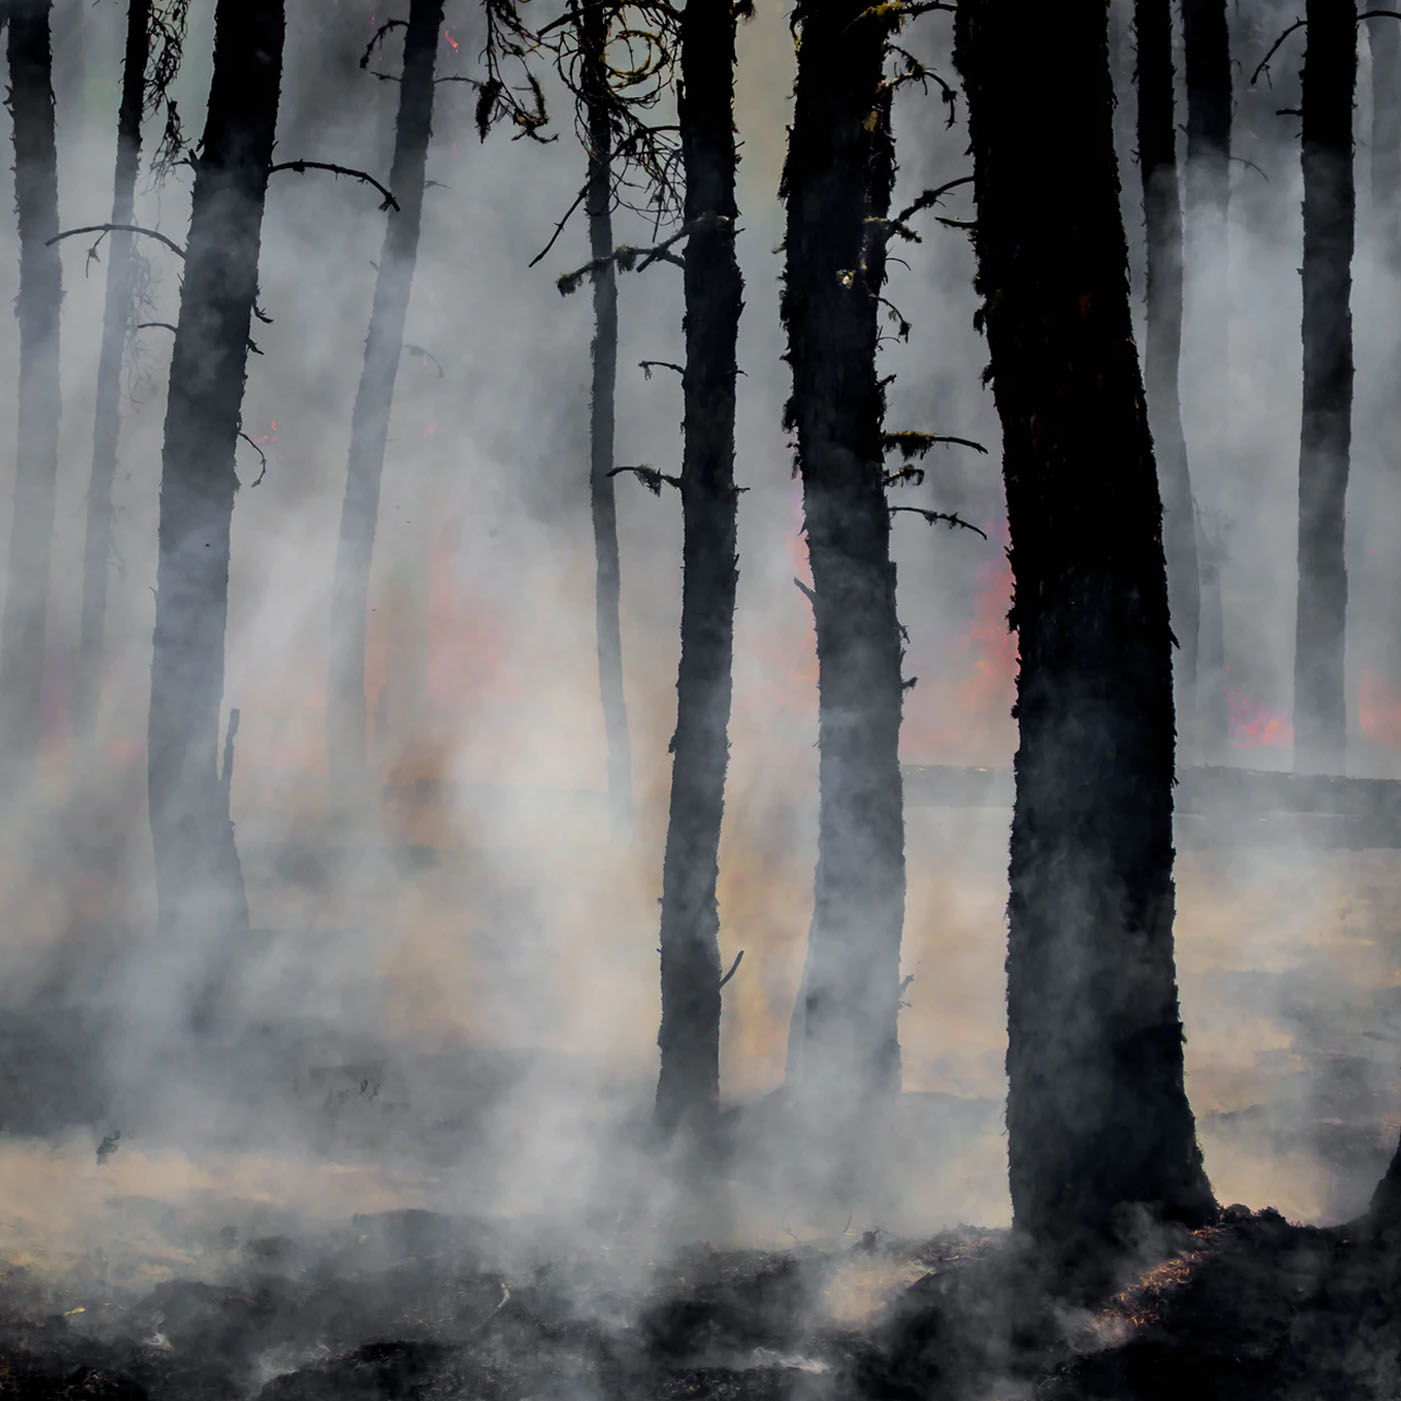 Persistent Autonomous Monitoring For Early Detection and Prediction Of Wildfires